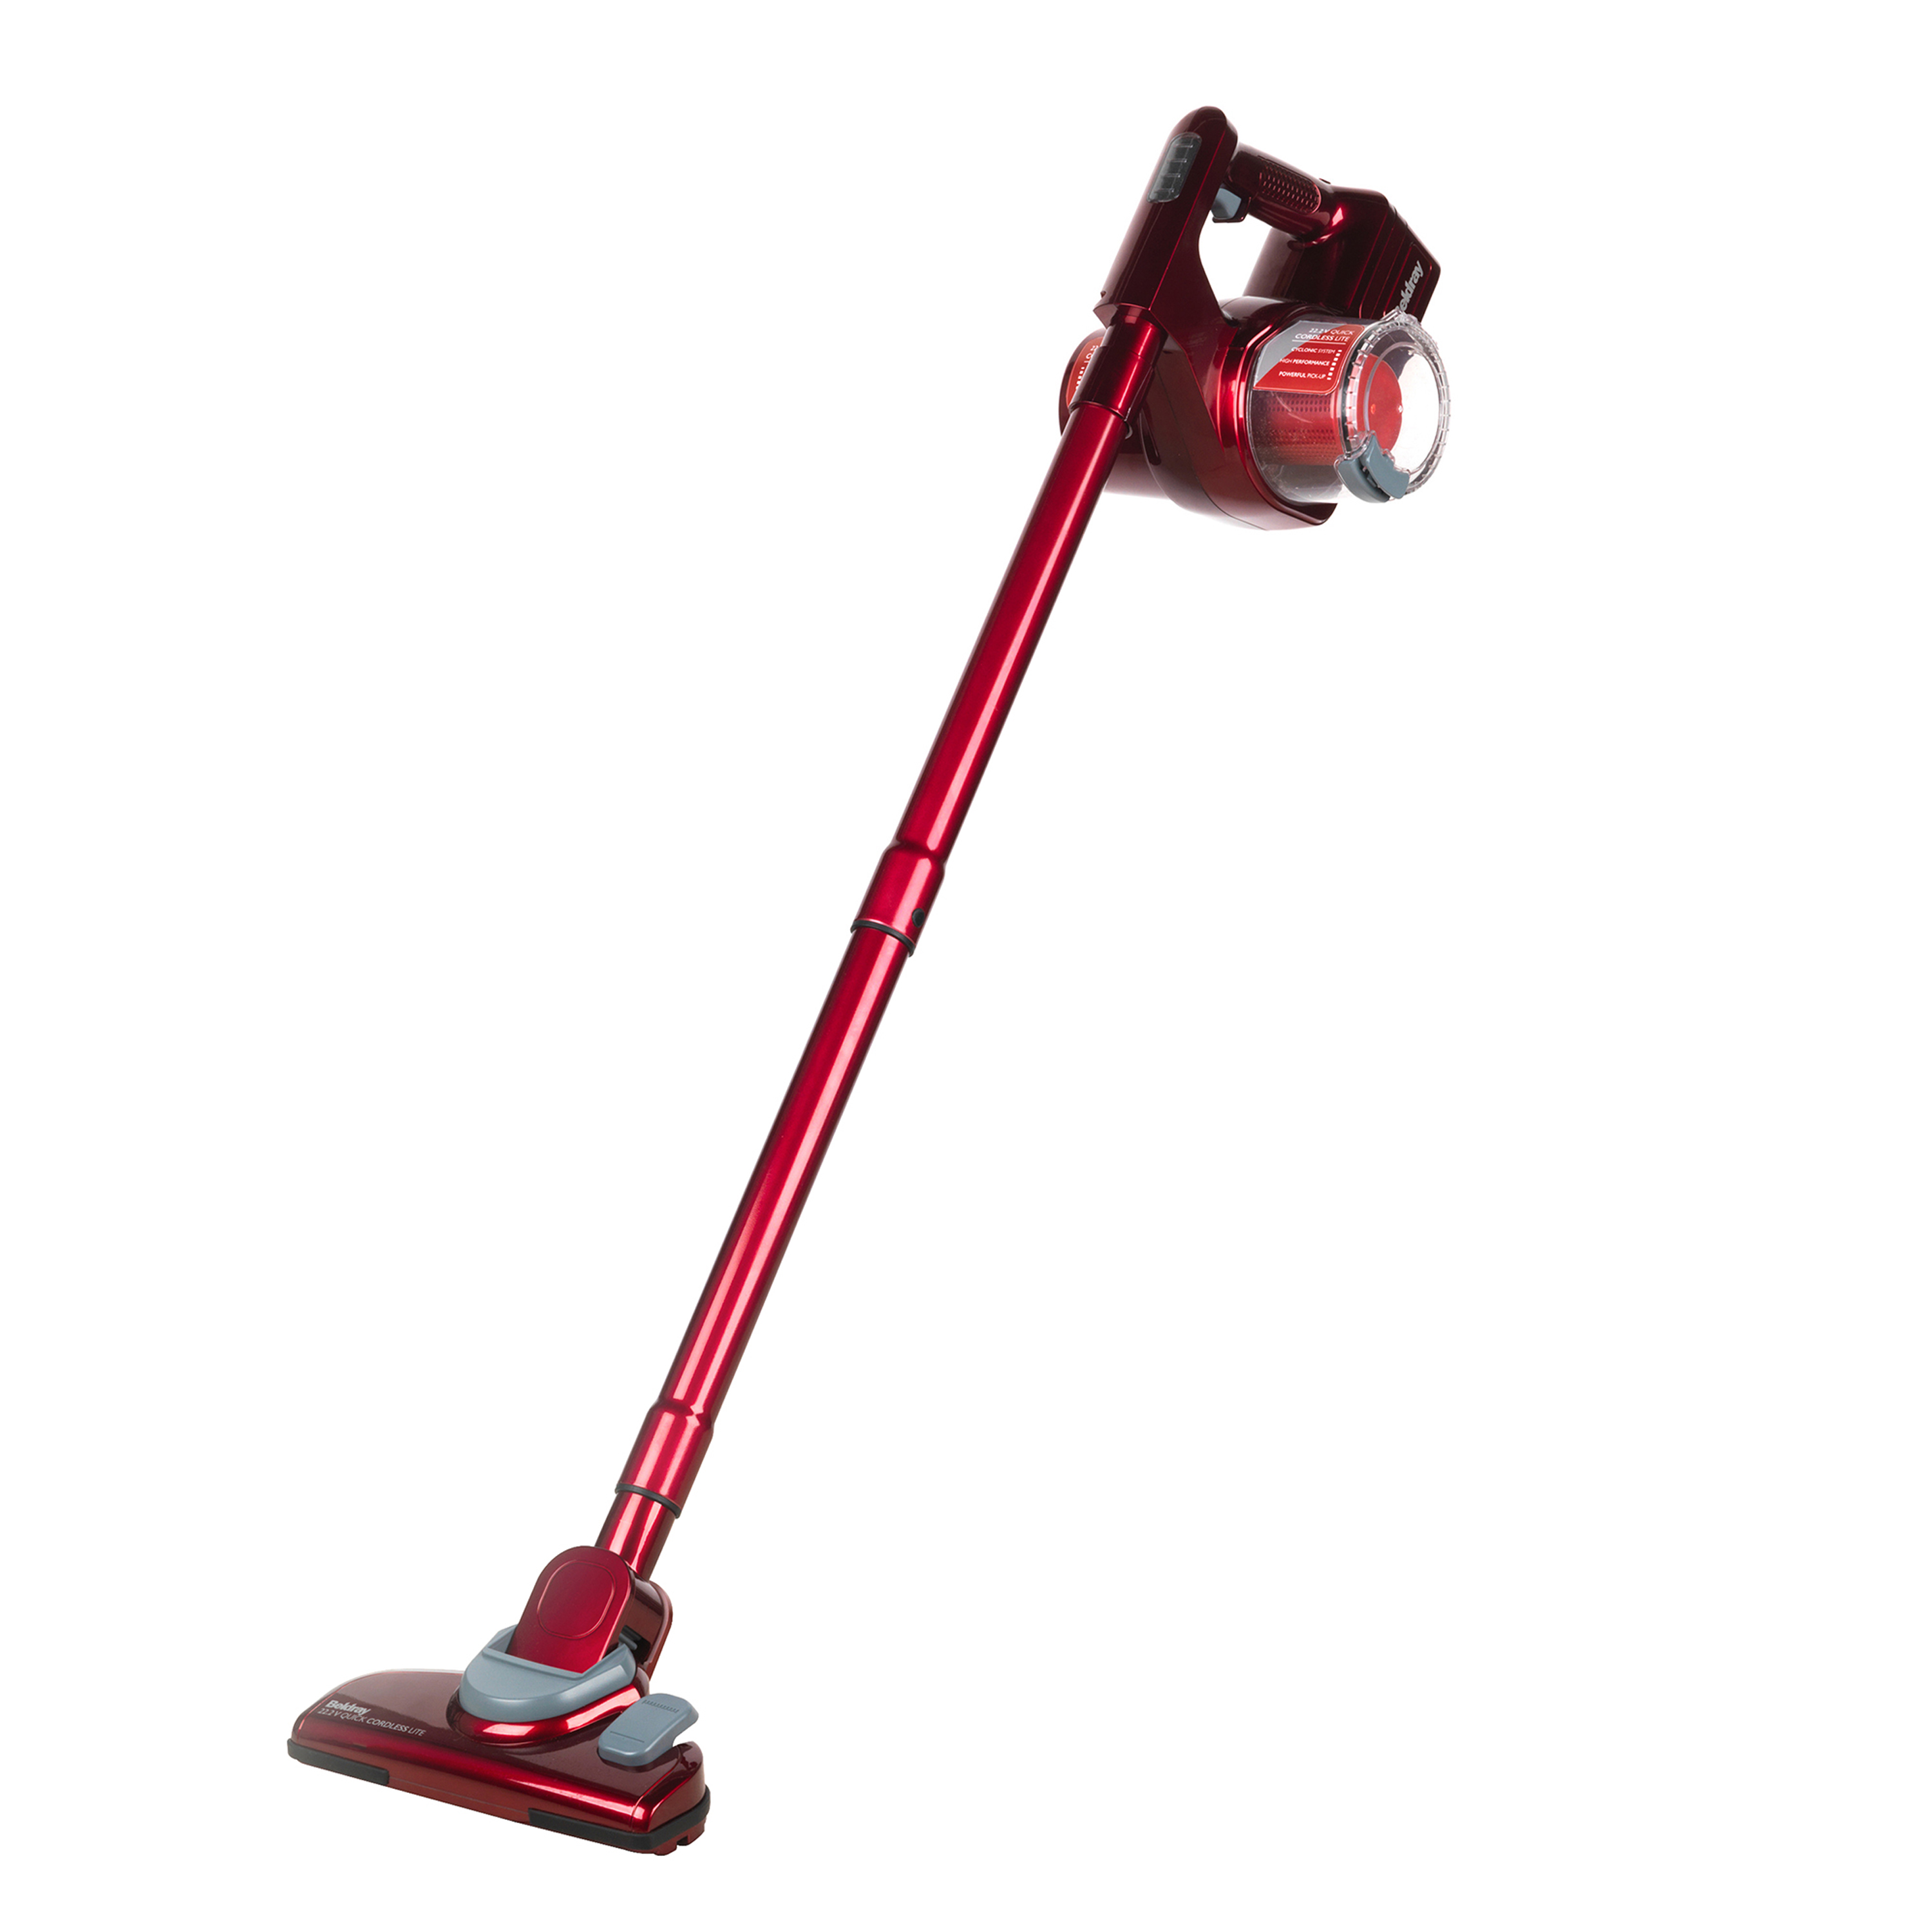 Beldray Quick Cordless Lite Vacuum Cleaner 0 3 Litre 22